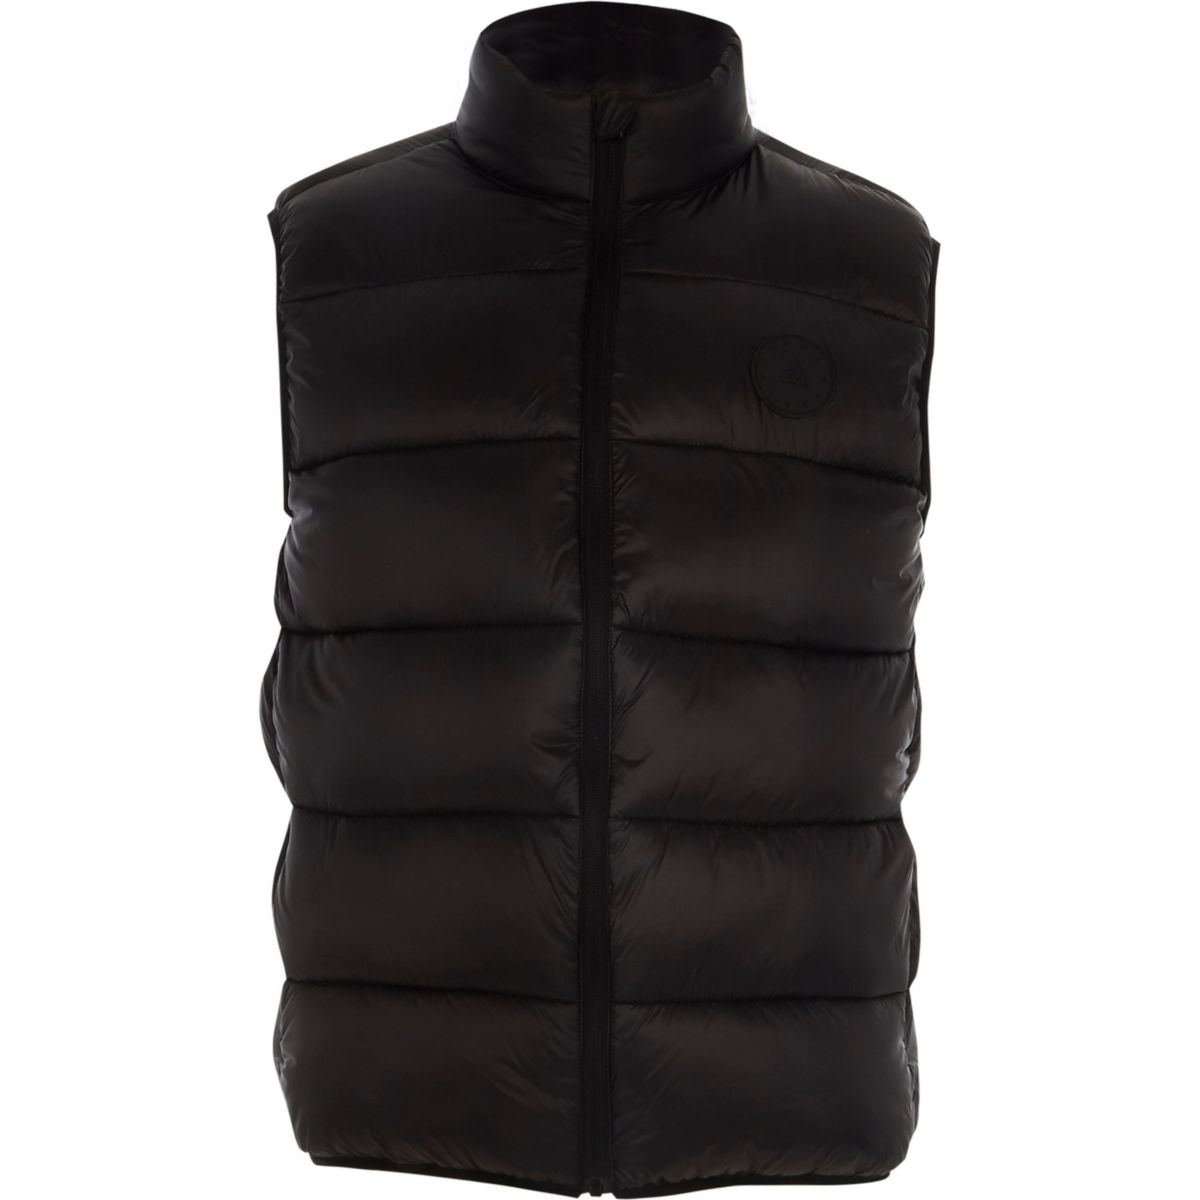 Big and Tall black puffer vest